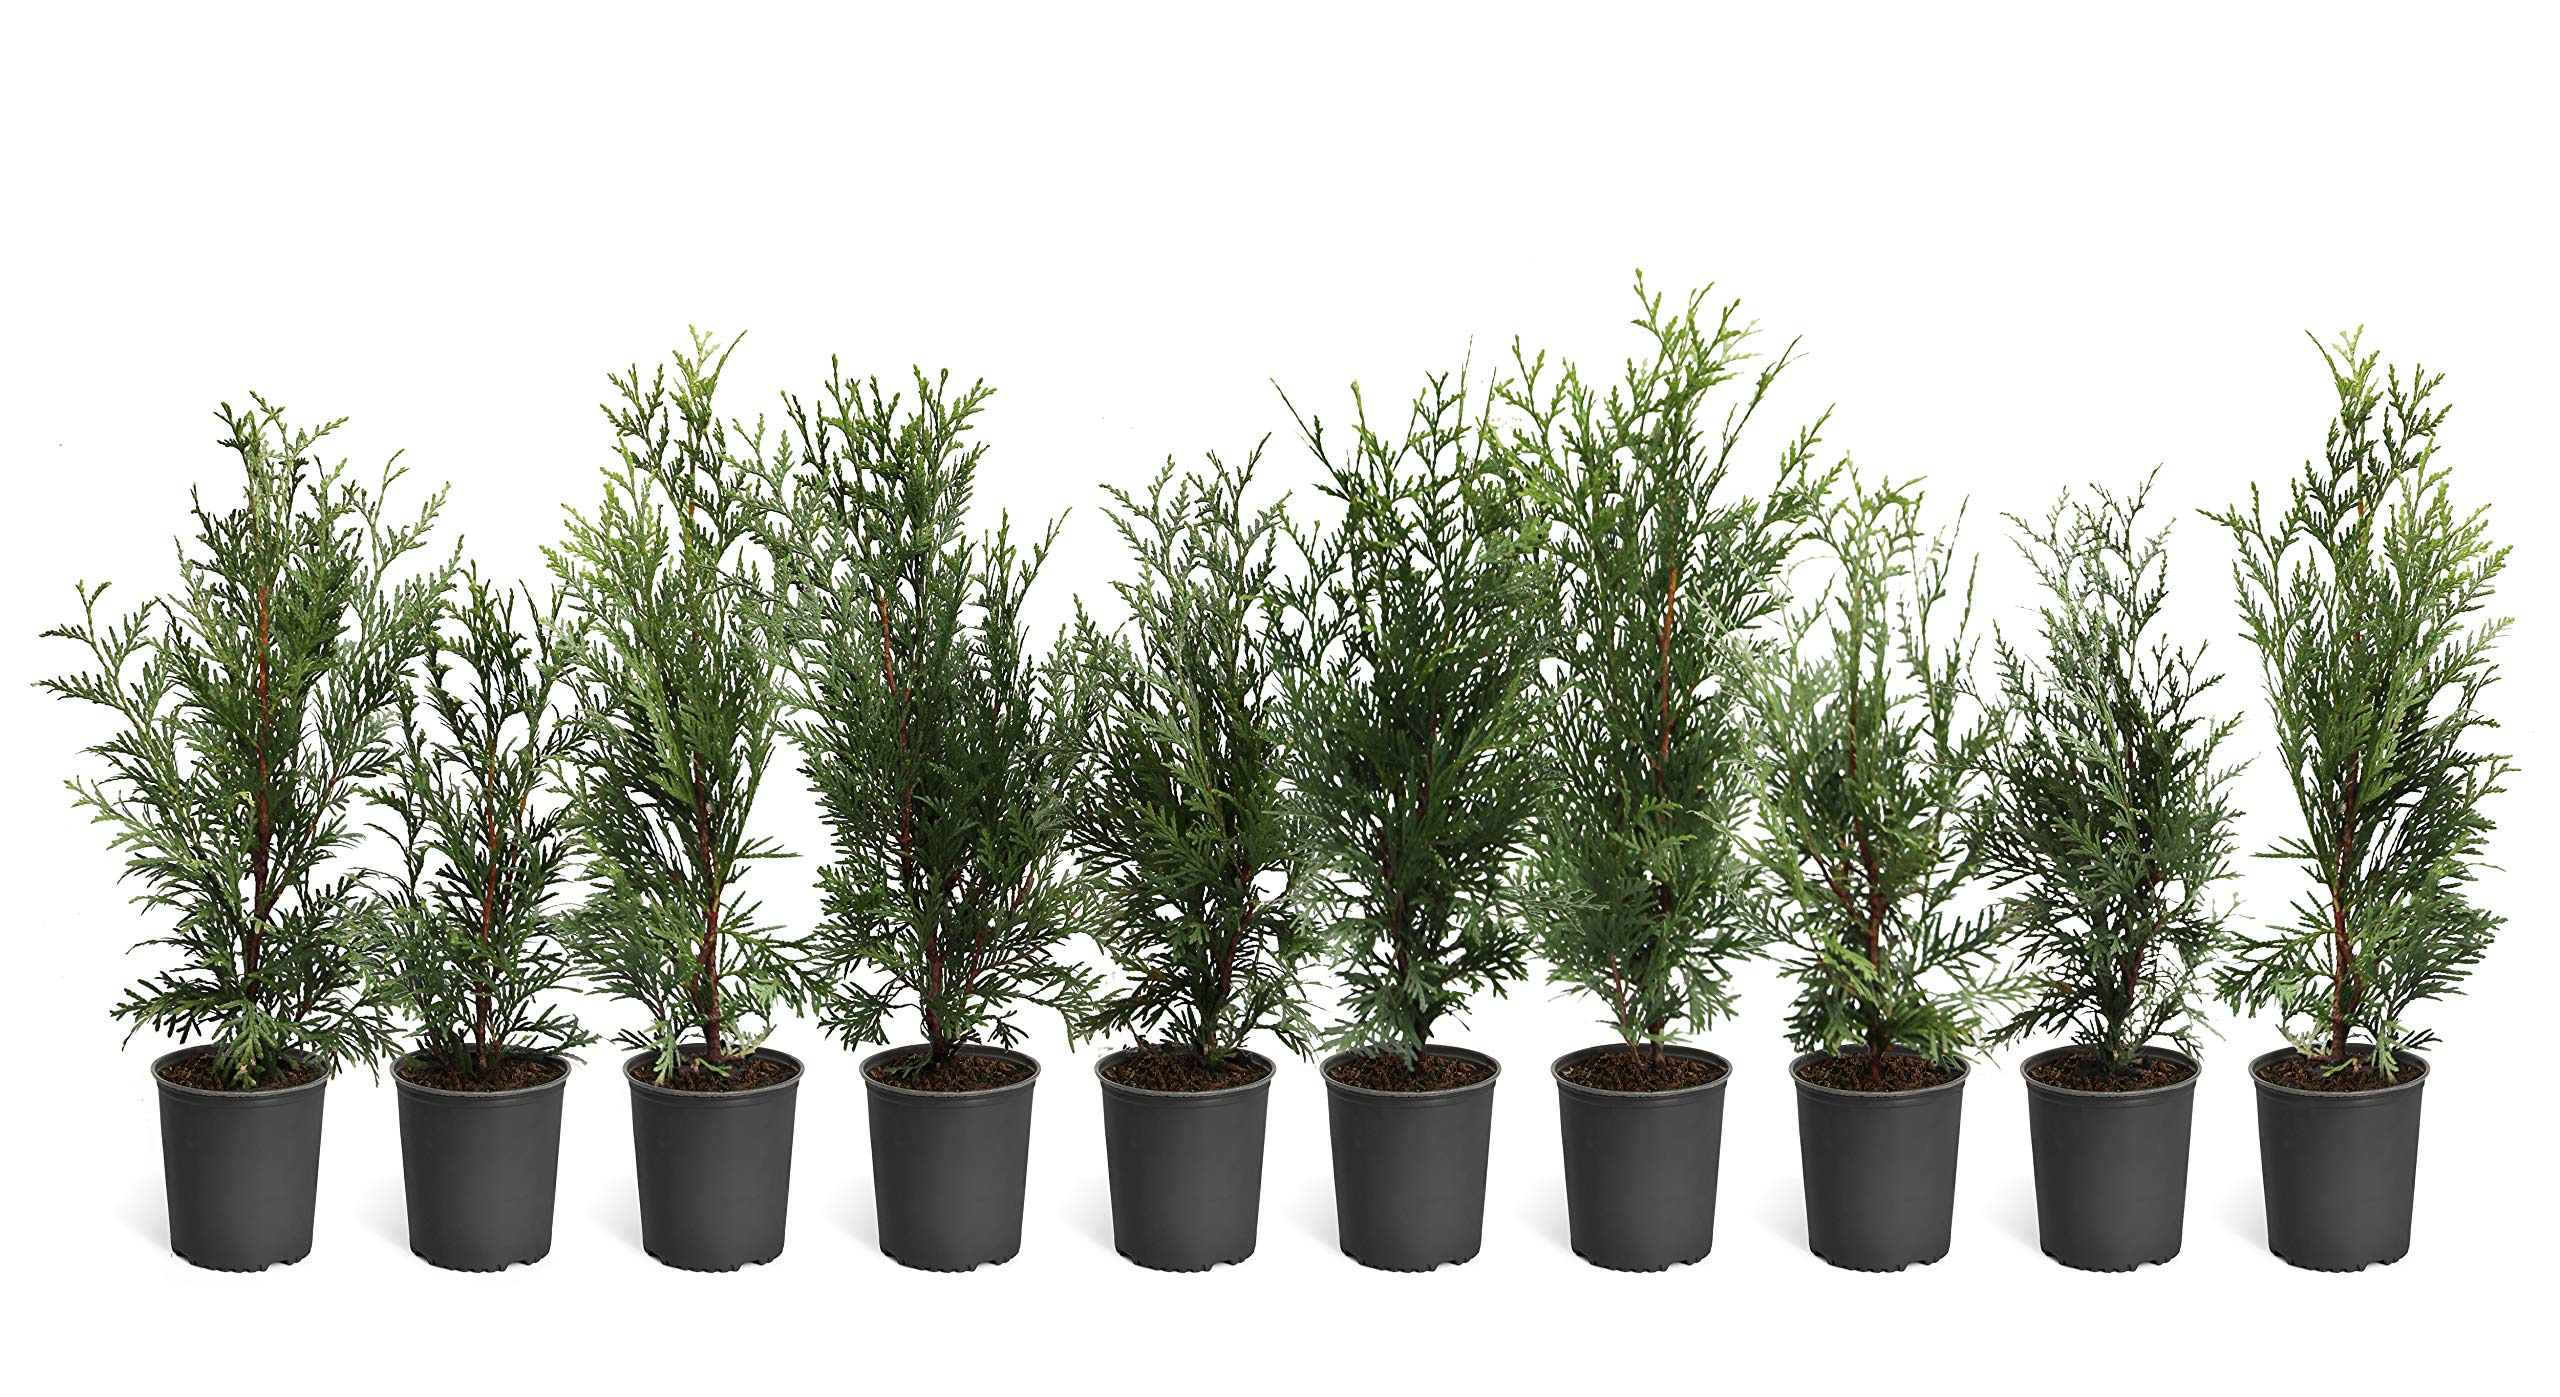 Thuja Green Giant Trees - Large, Tall Evergreen Trees for Instant Privacy! - Oversize Arborvitae Thuja Green Giants (10 Plants (1-2 feet Tall))